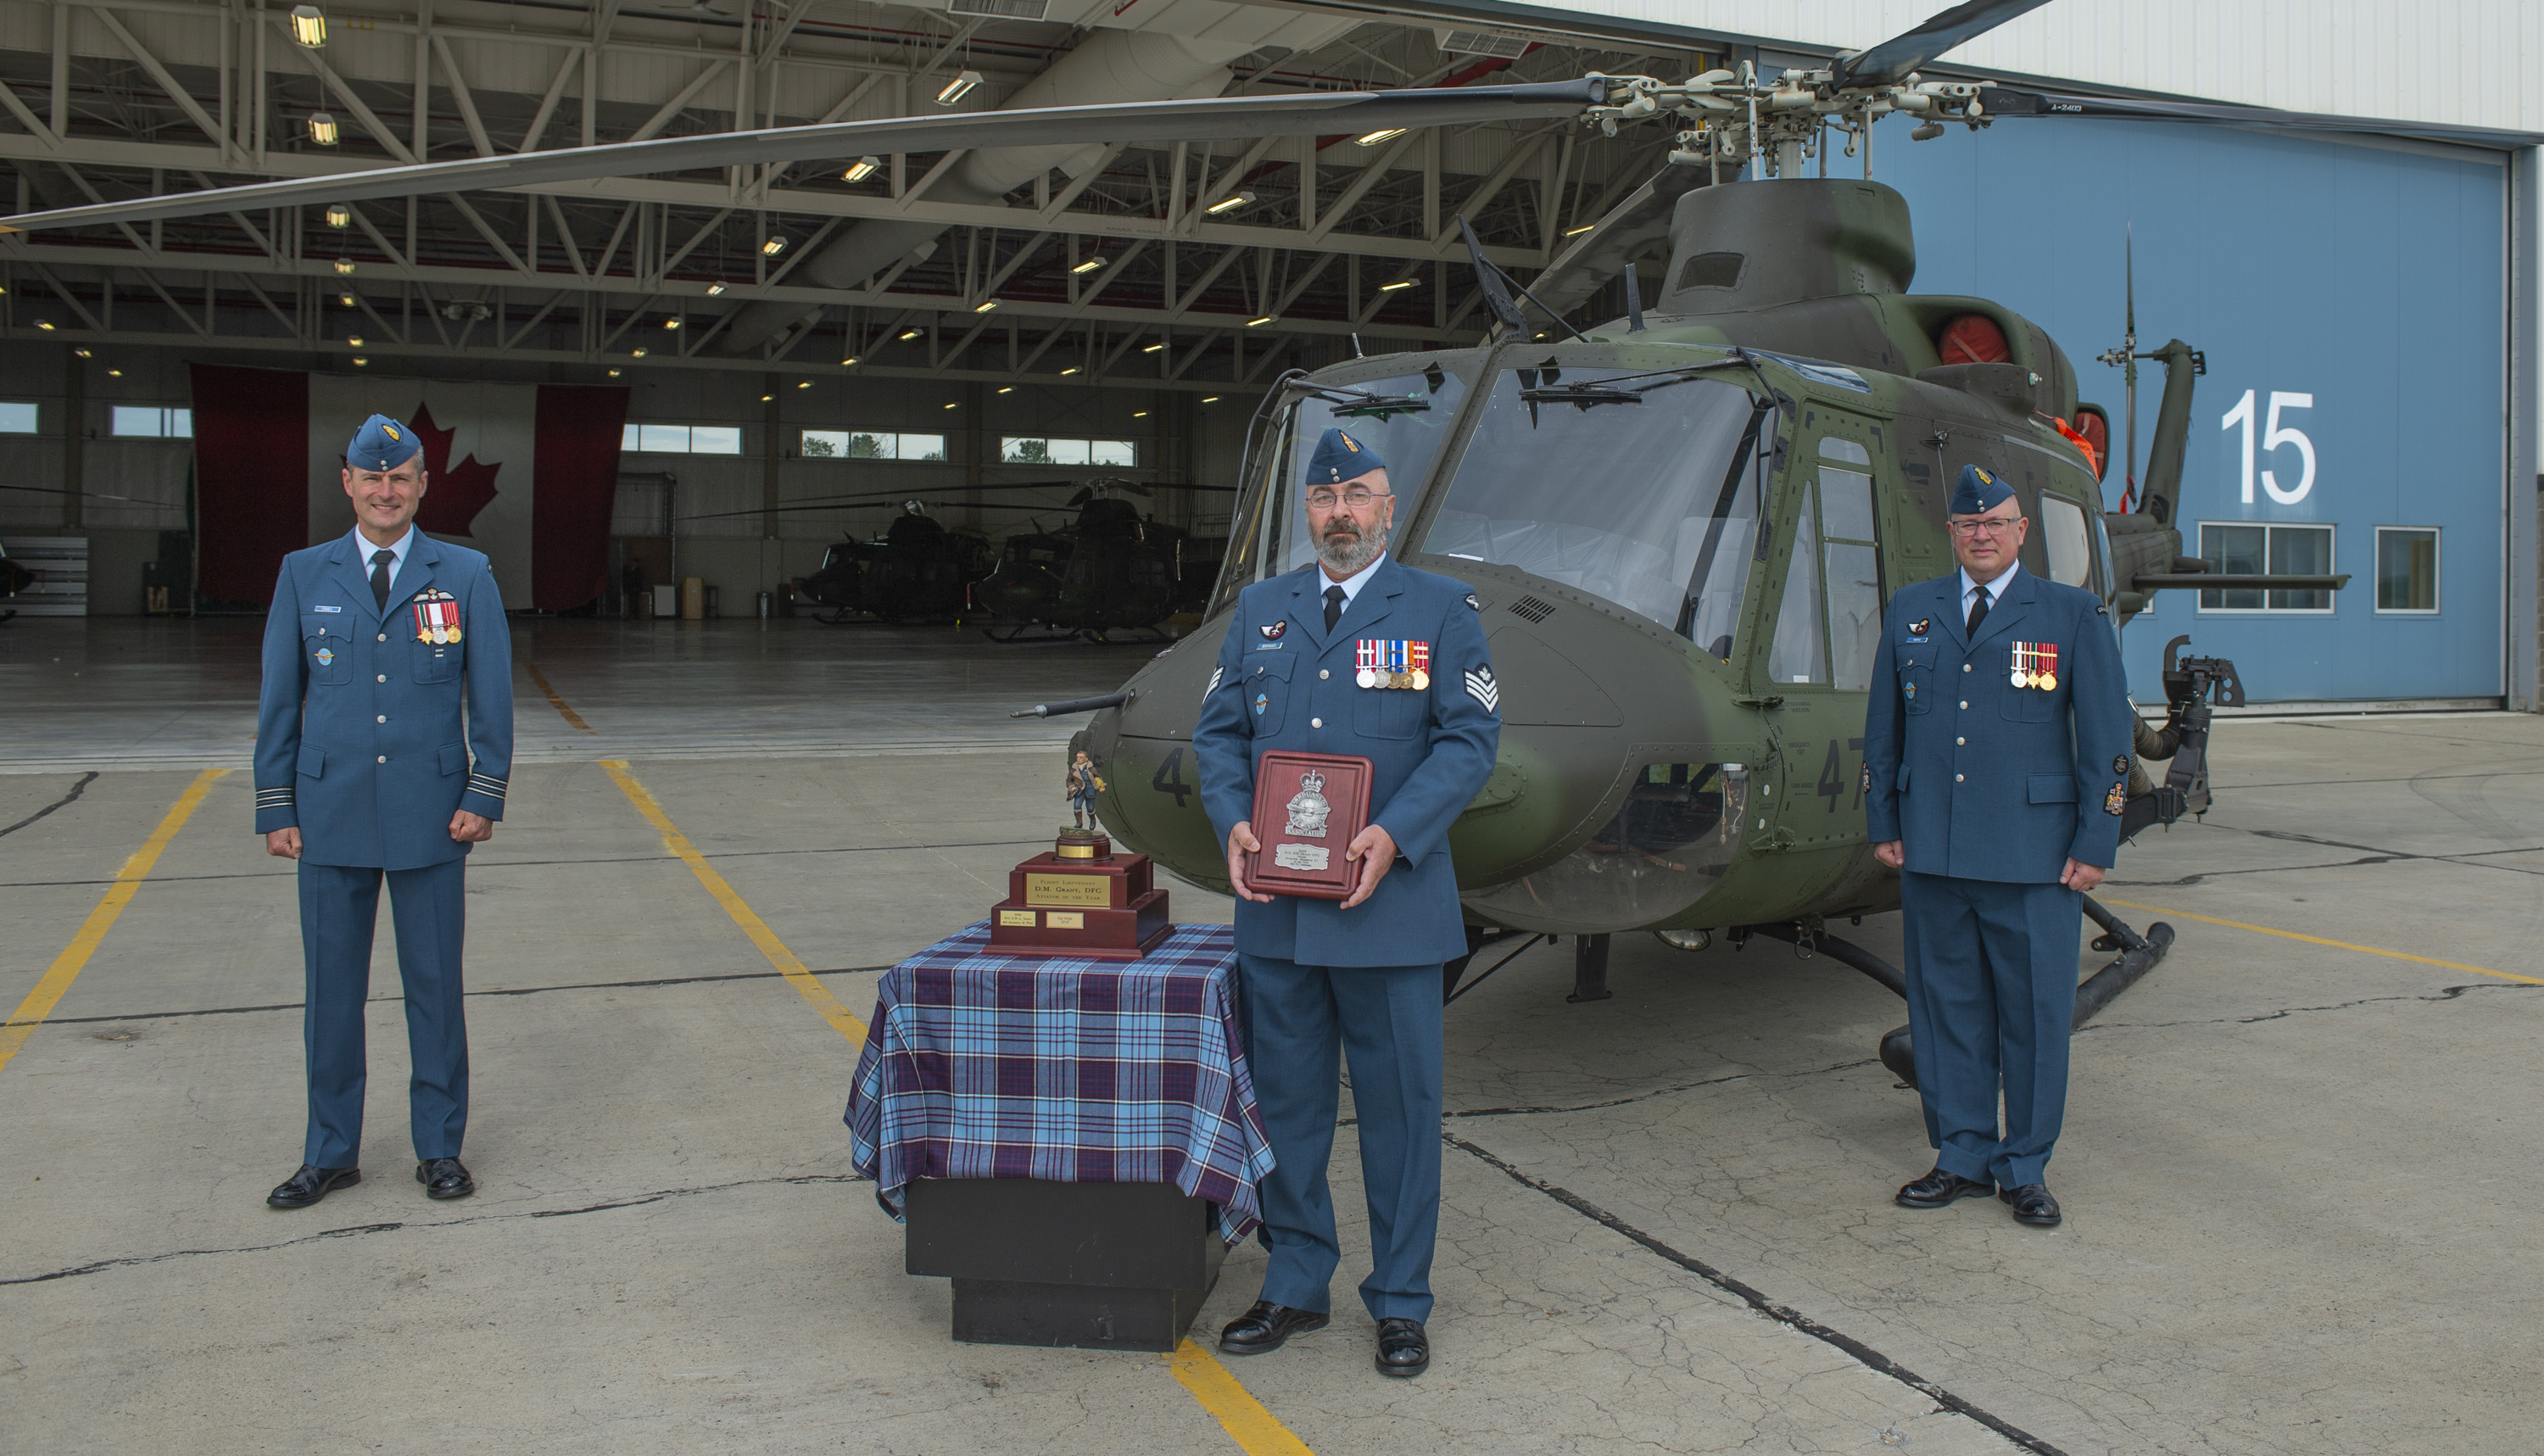 Three men wearing blue military uniforms and wedge hats stand outside a hangar in front of a military helicopter. The man in the middle holds a plaque and beside him is a little table with a trophy.